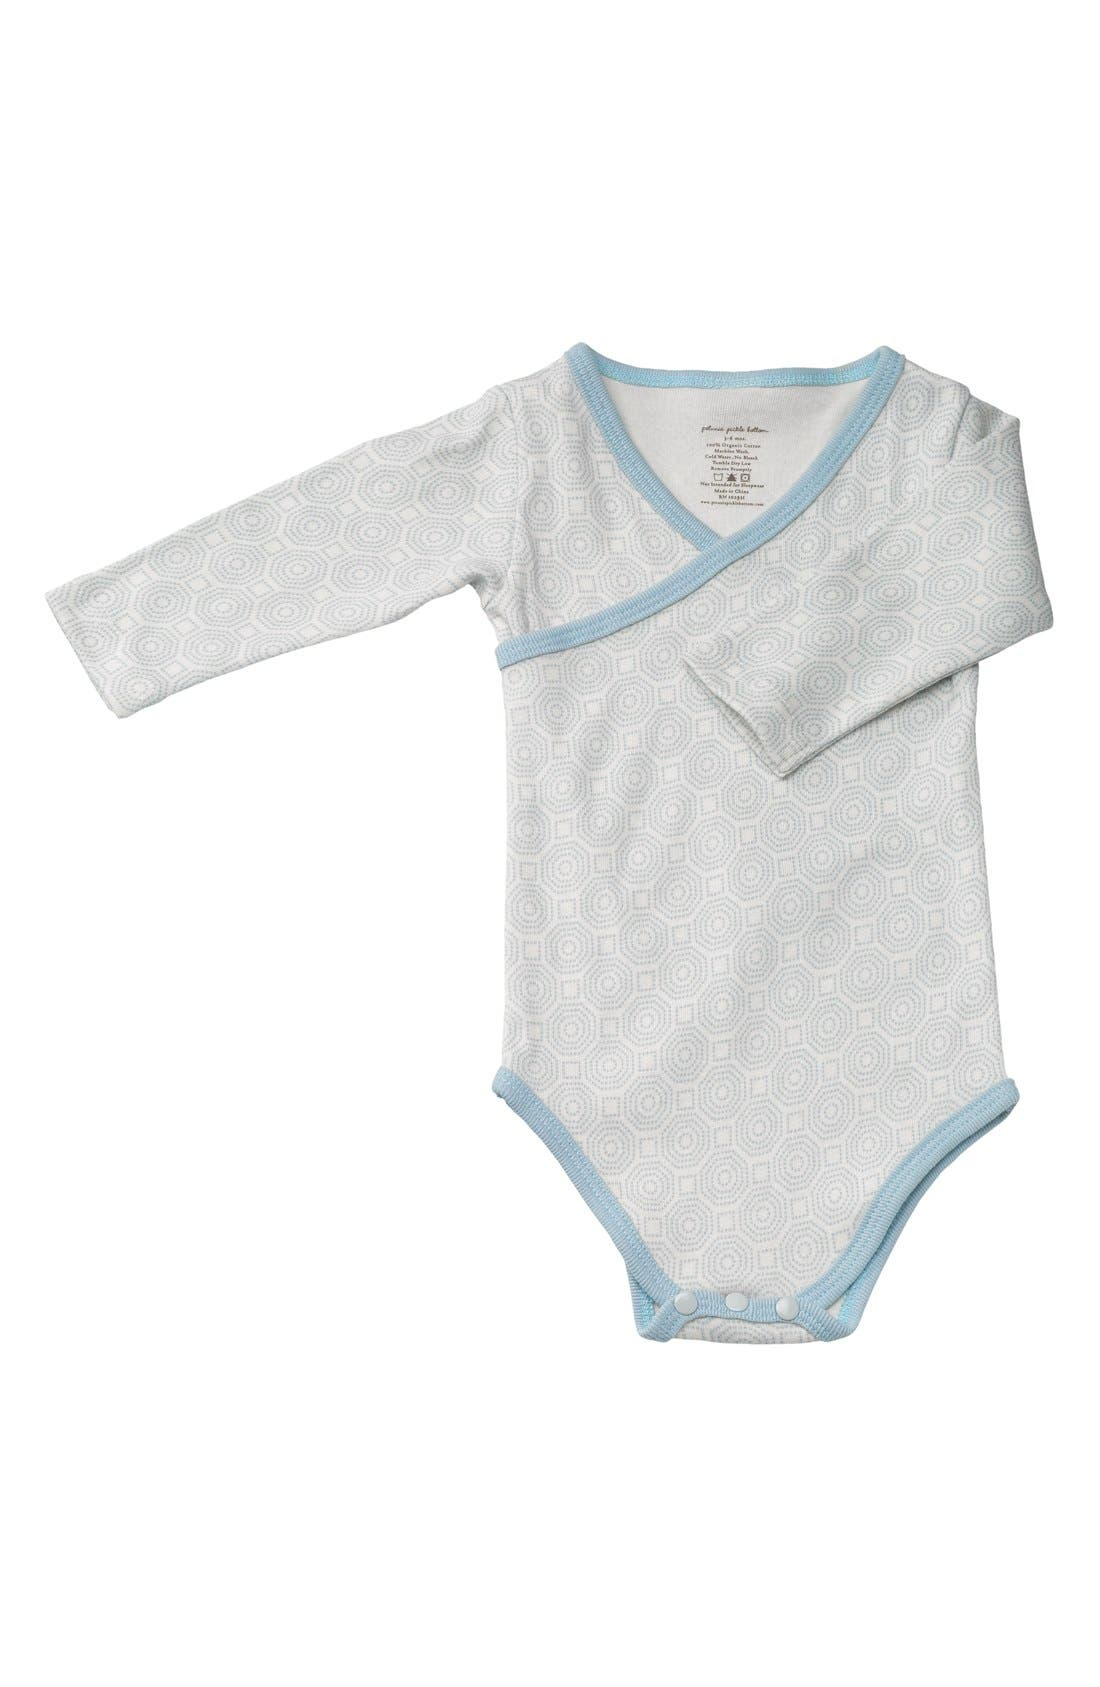 Alternate Image 1 Selected - Petunia Pickle Bottom Organic Cotton Long Sleeve Bodysuit (Baby)